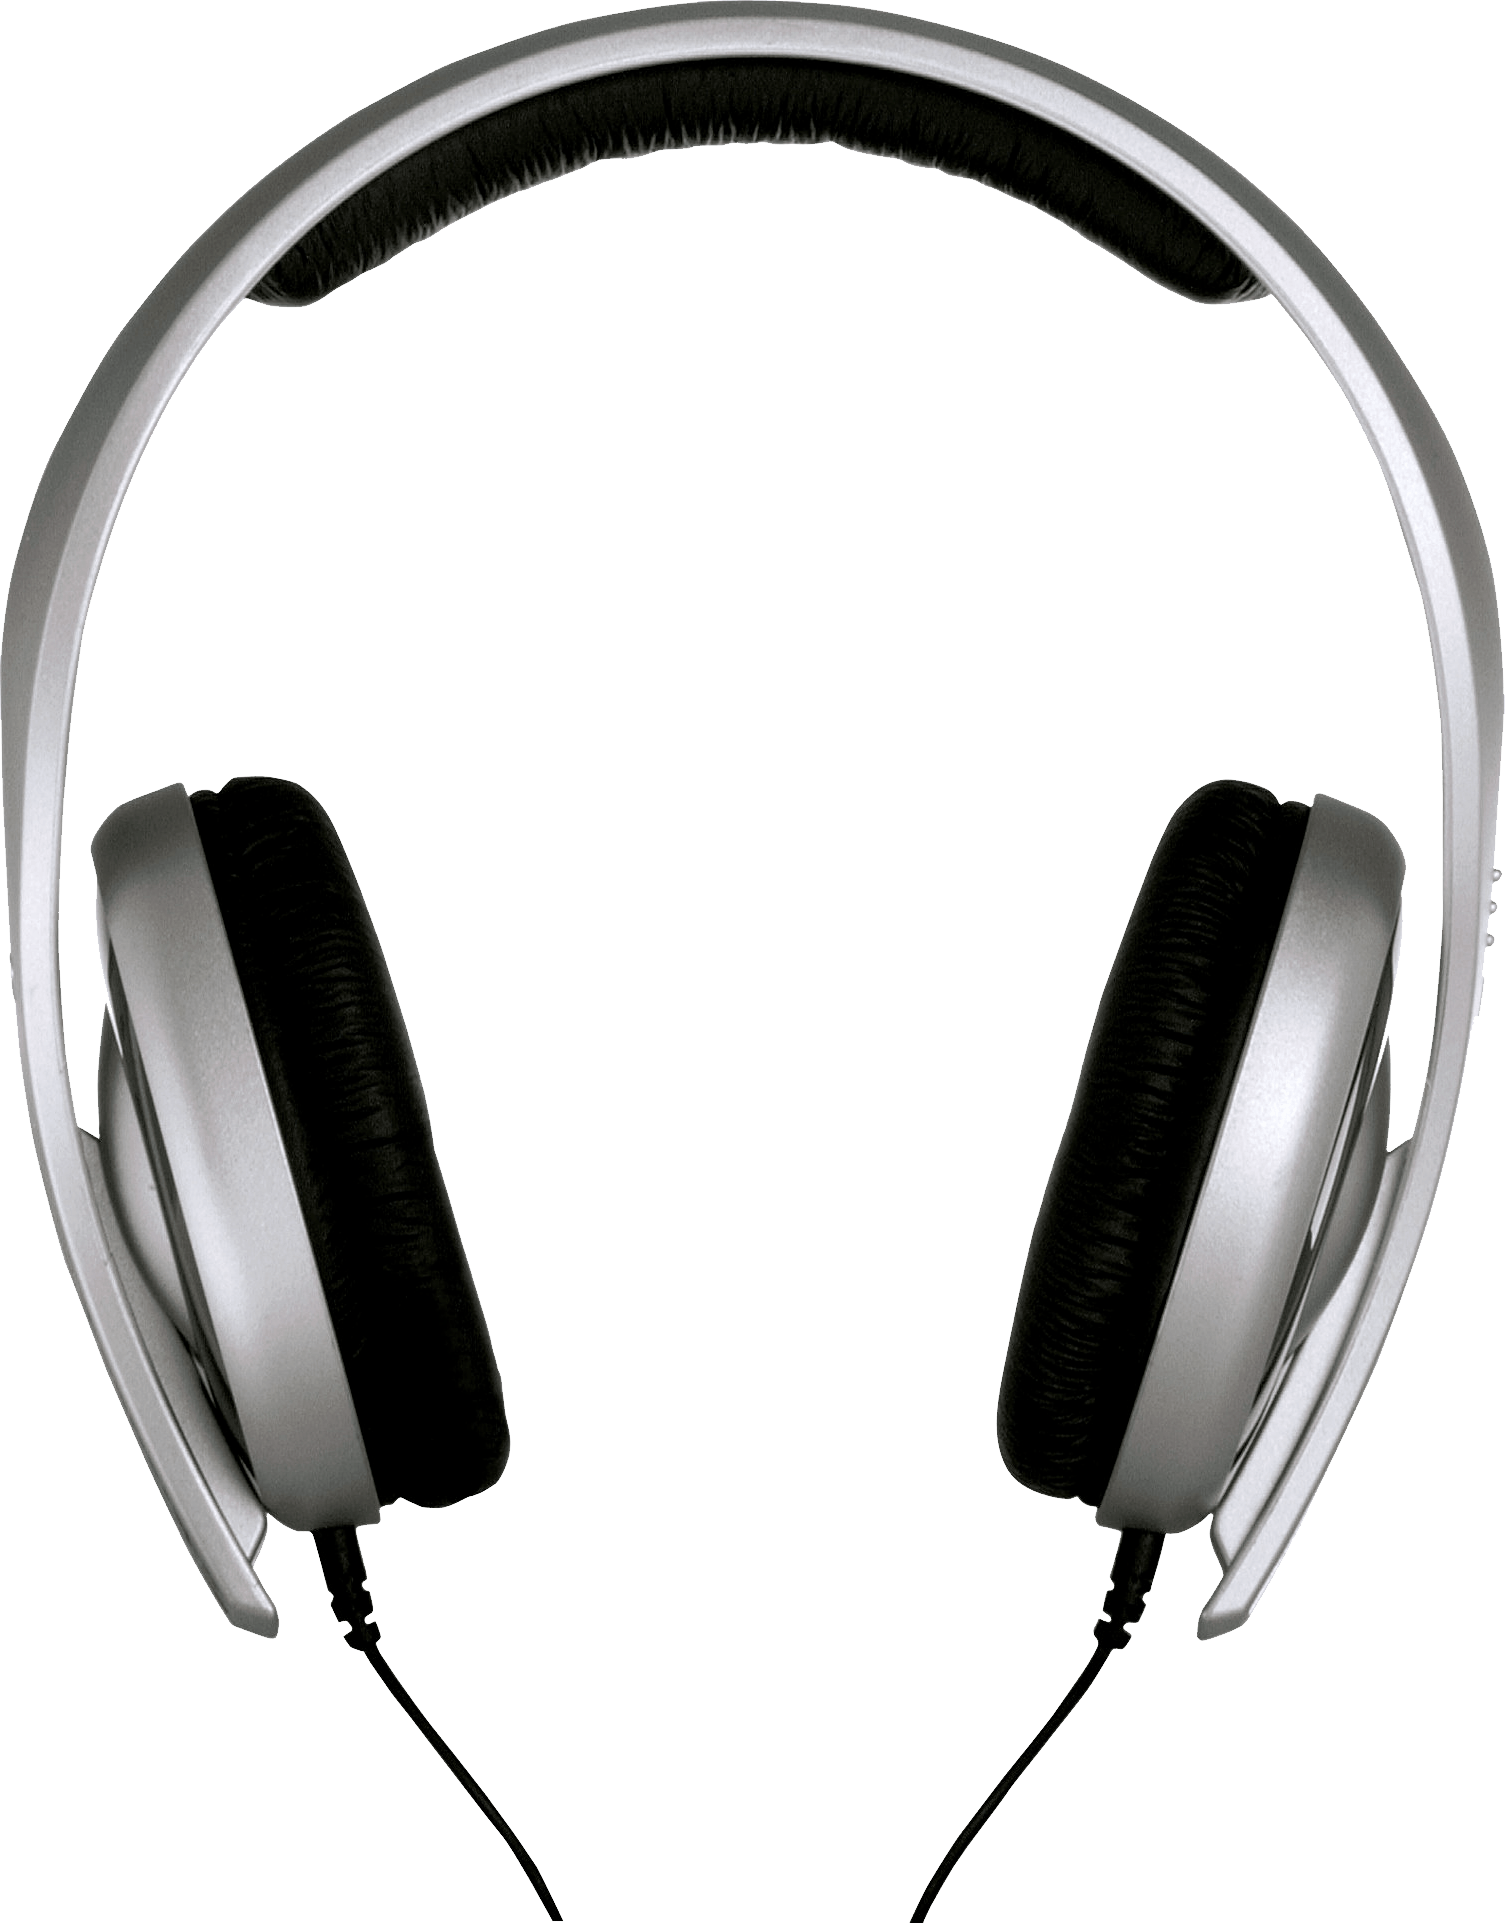 Headphone transparent file. Headphones png stickpng large